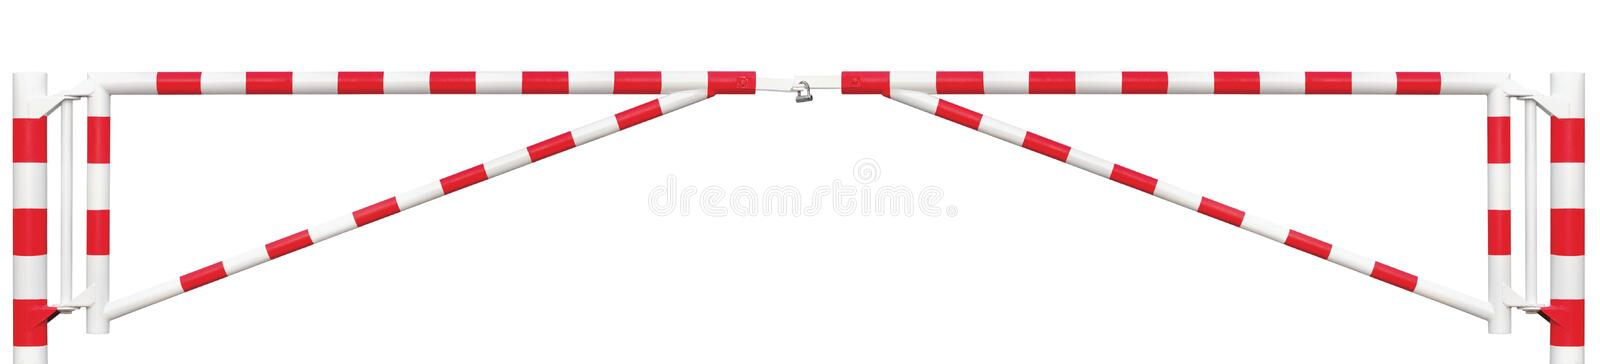 Gated Road Double Traffic Barrier Panorama Closeup, Roadway Gate Bar In Bright White Red, Entry Stop Block Vehicle Security Point. Gated Road Double Traffic royalty free stock images